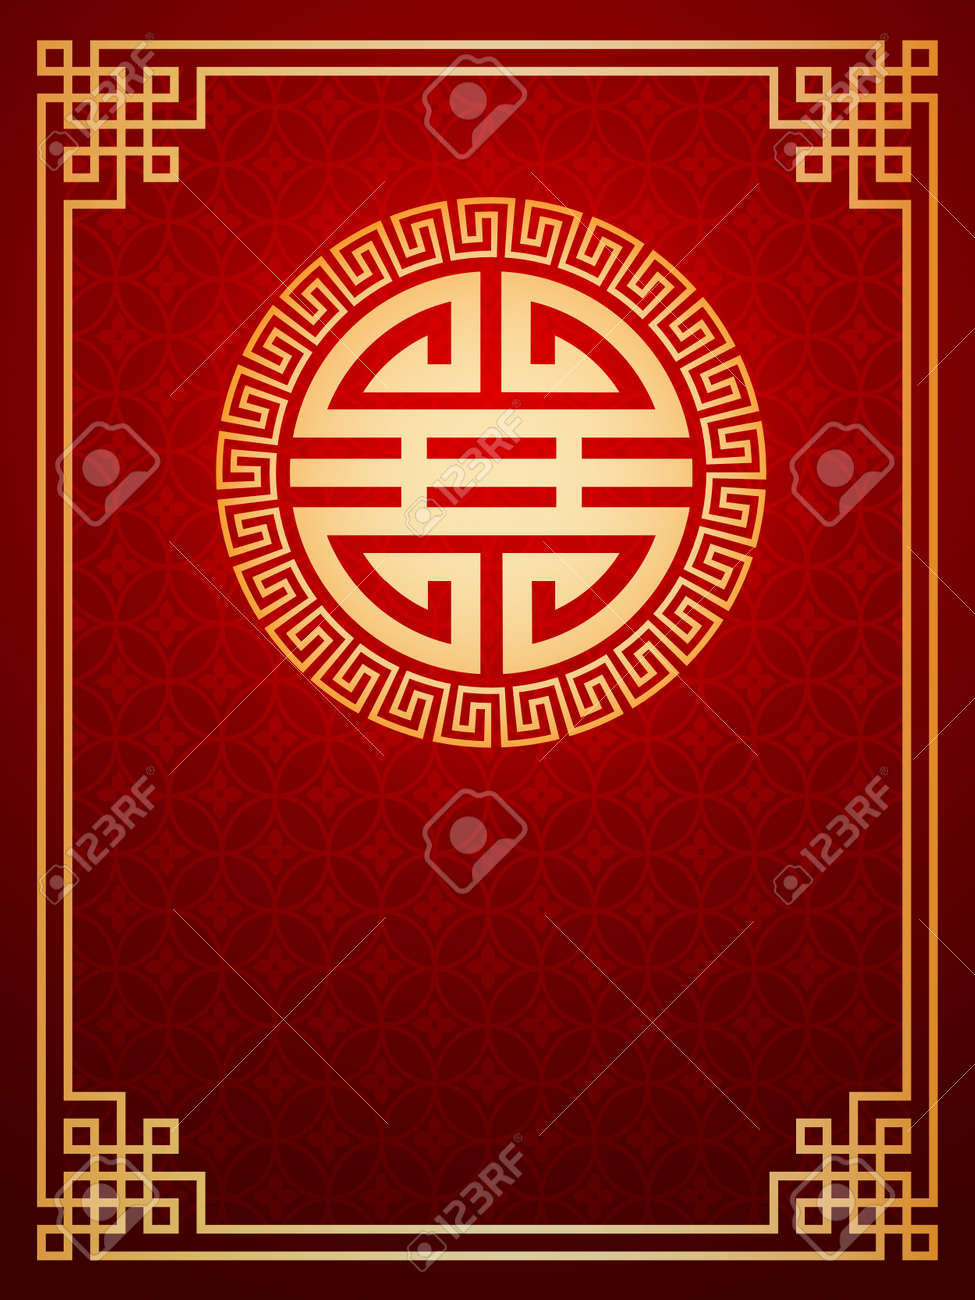 Oriental Chinese Template Composition  cover, invitation, decoration element Stock Vector - 29649519